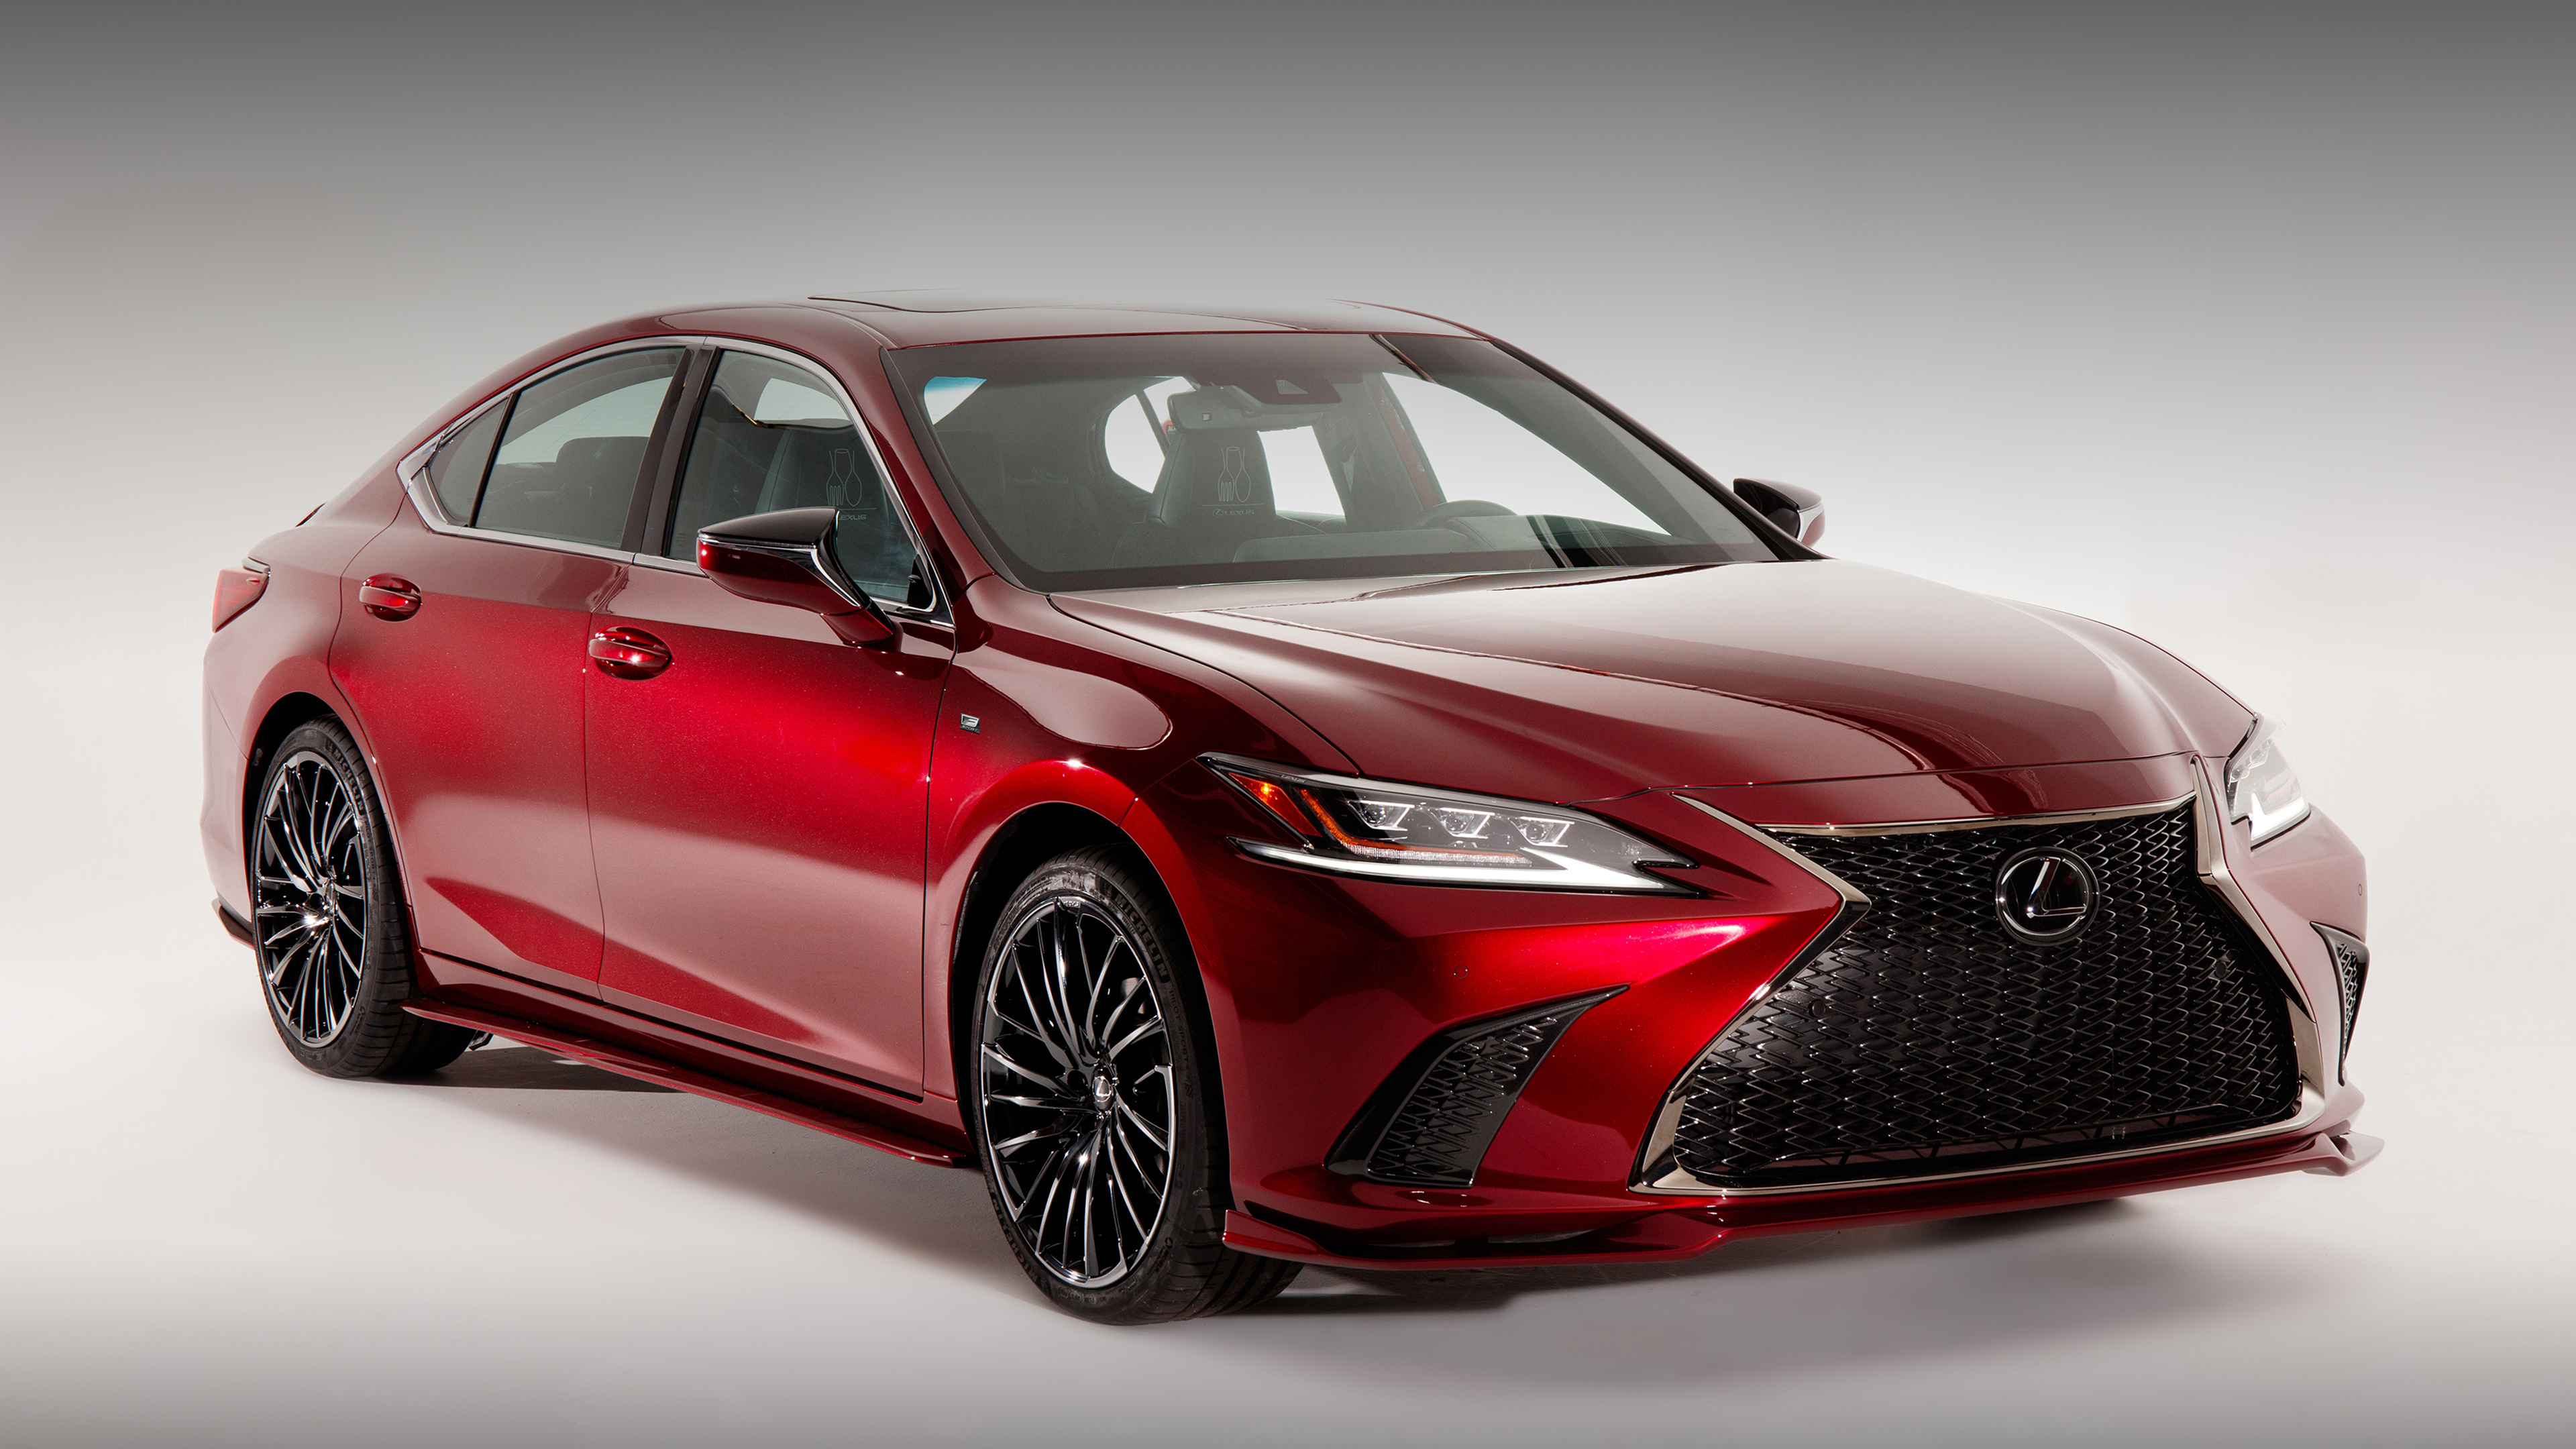 2019 Lexus ES 350 F SPORT Custom 4K Wallpaper | HD Car ...